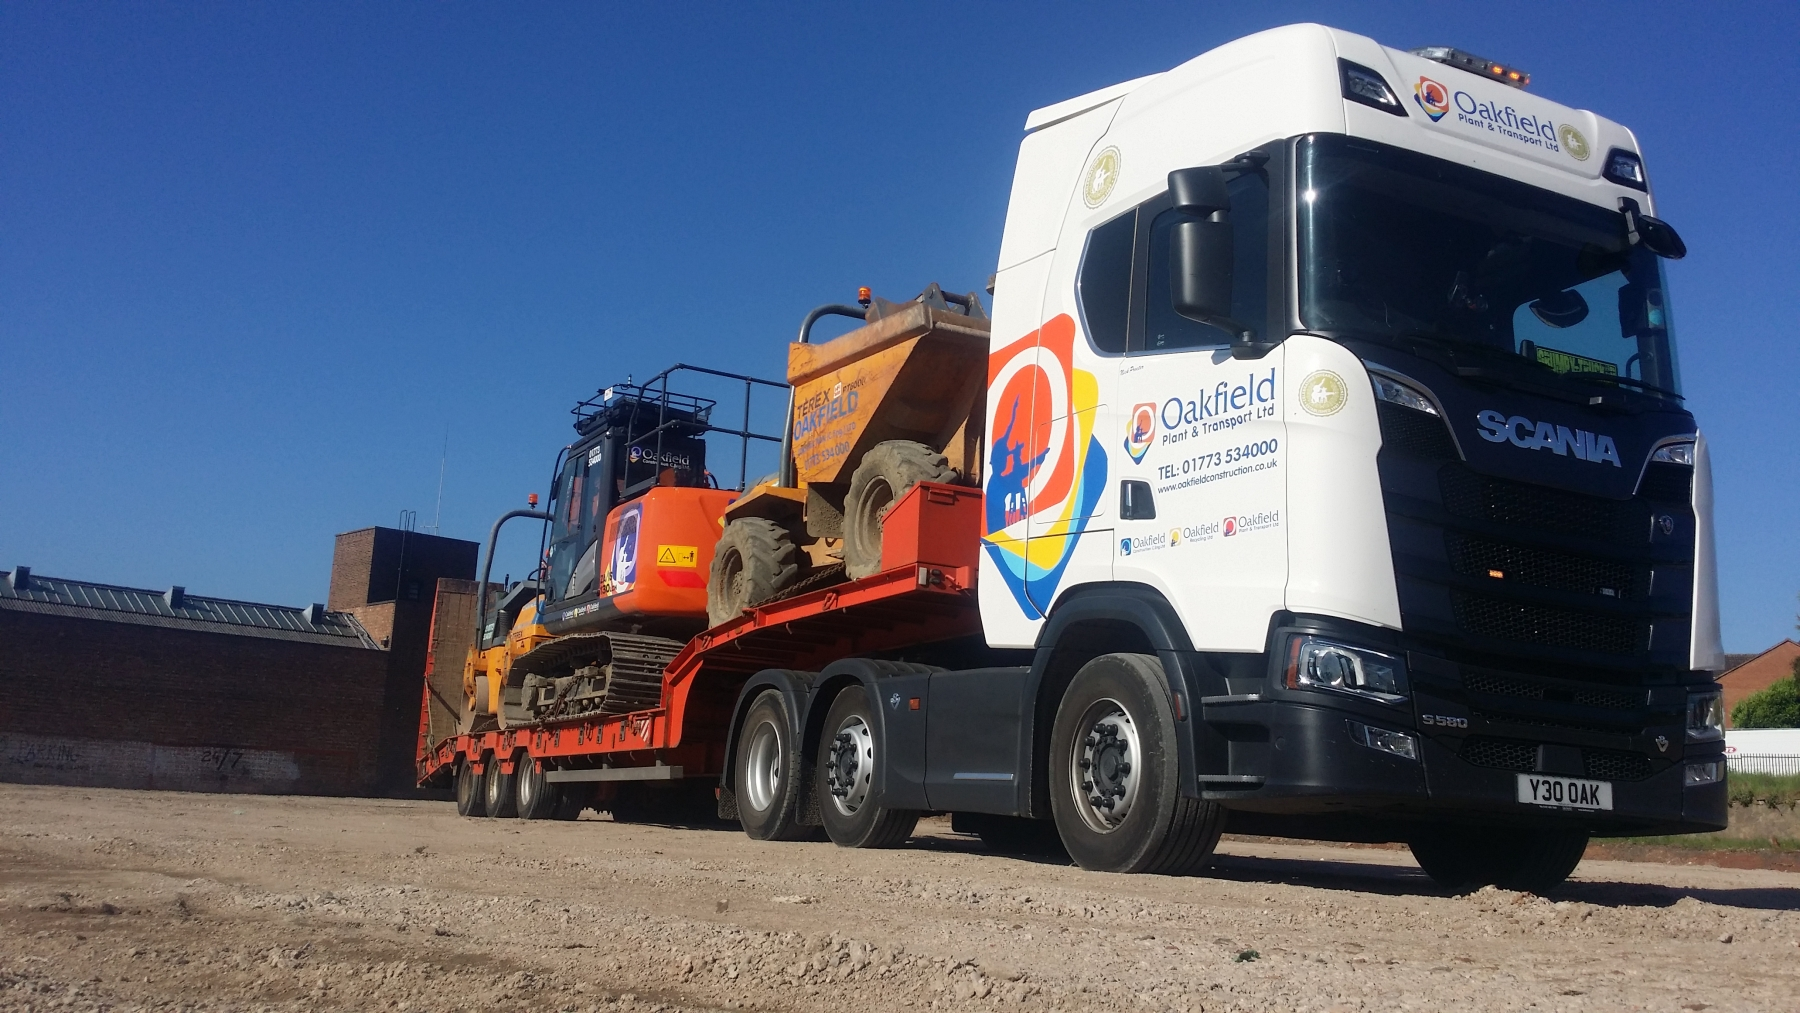 Oakfield Plant & Transport